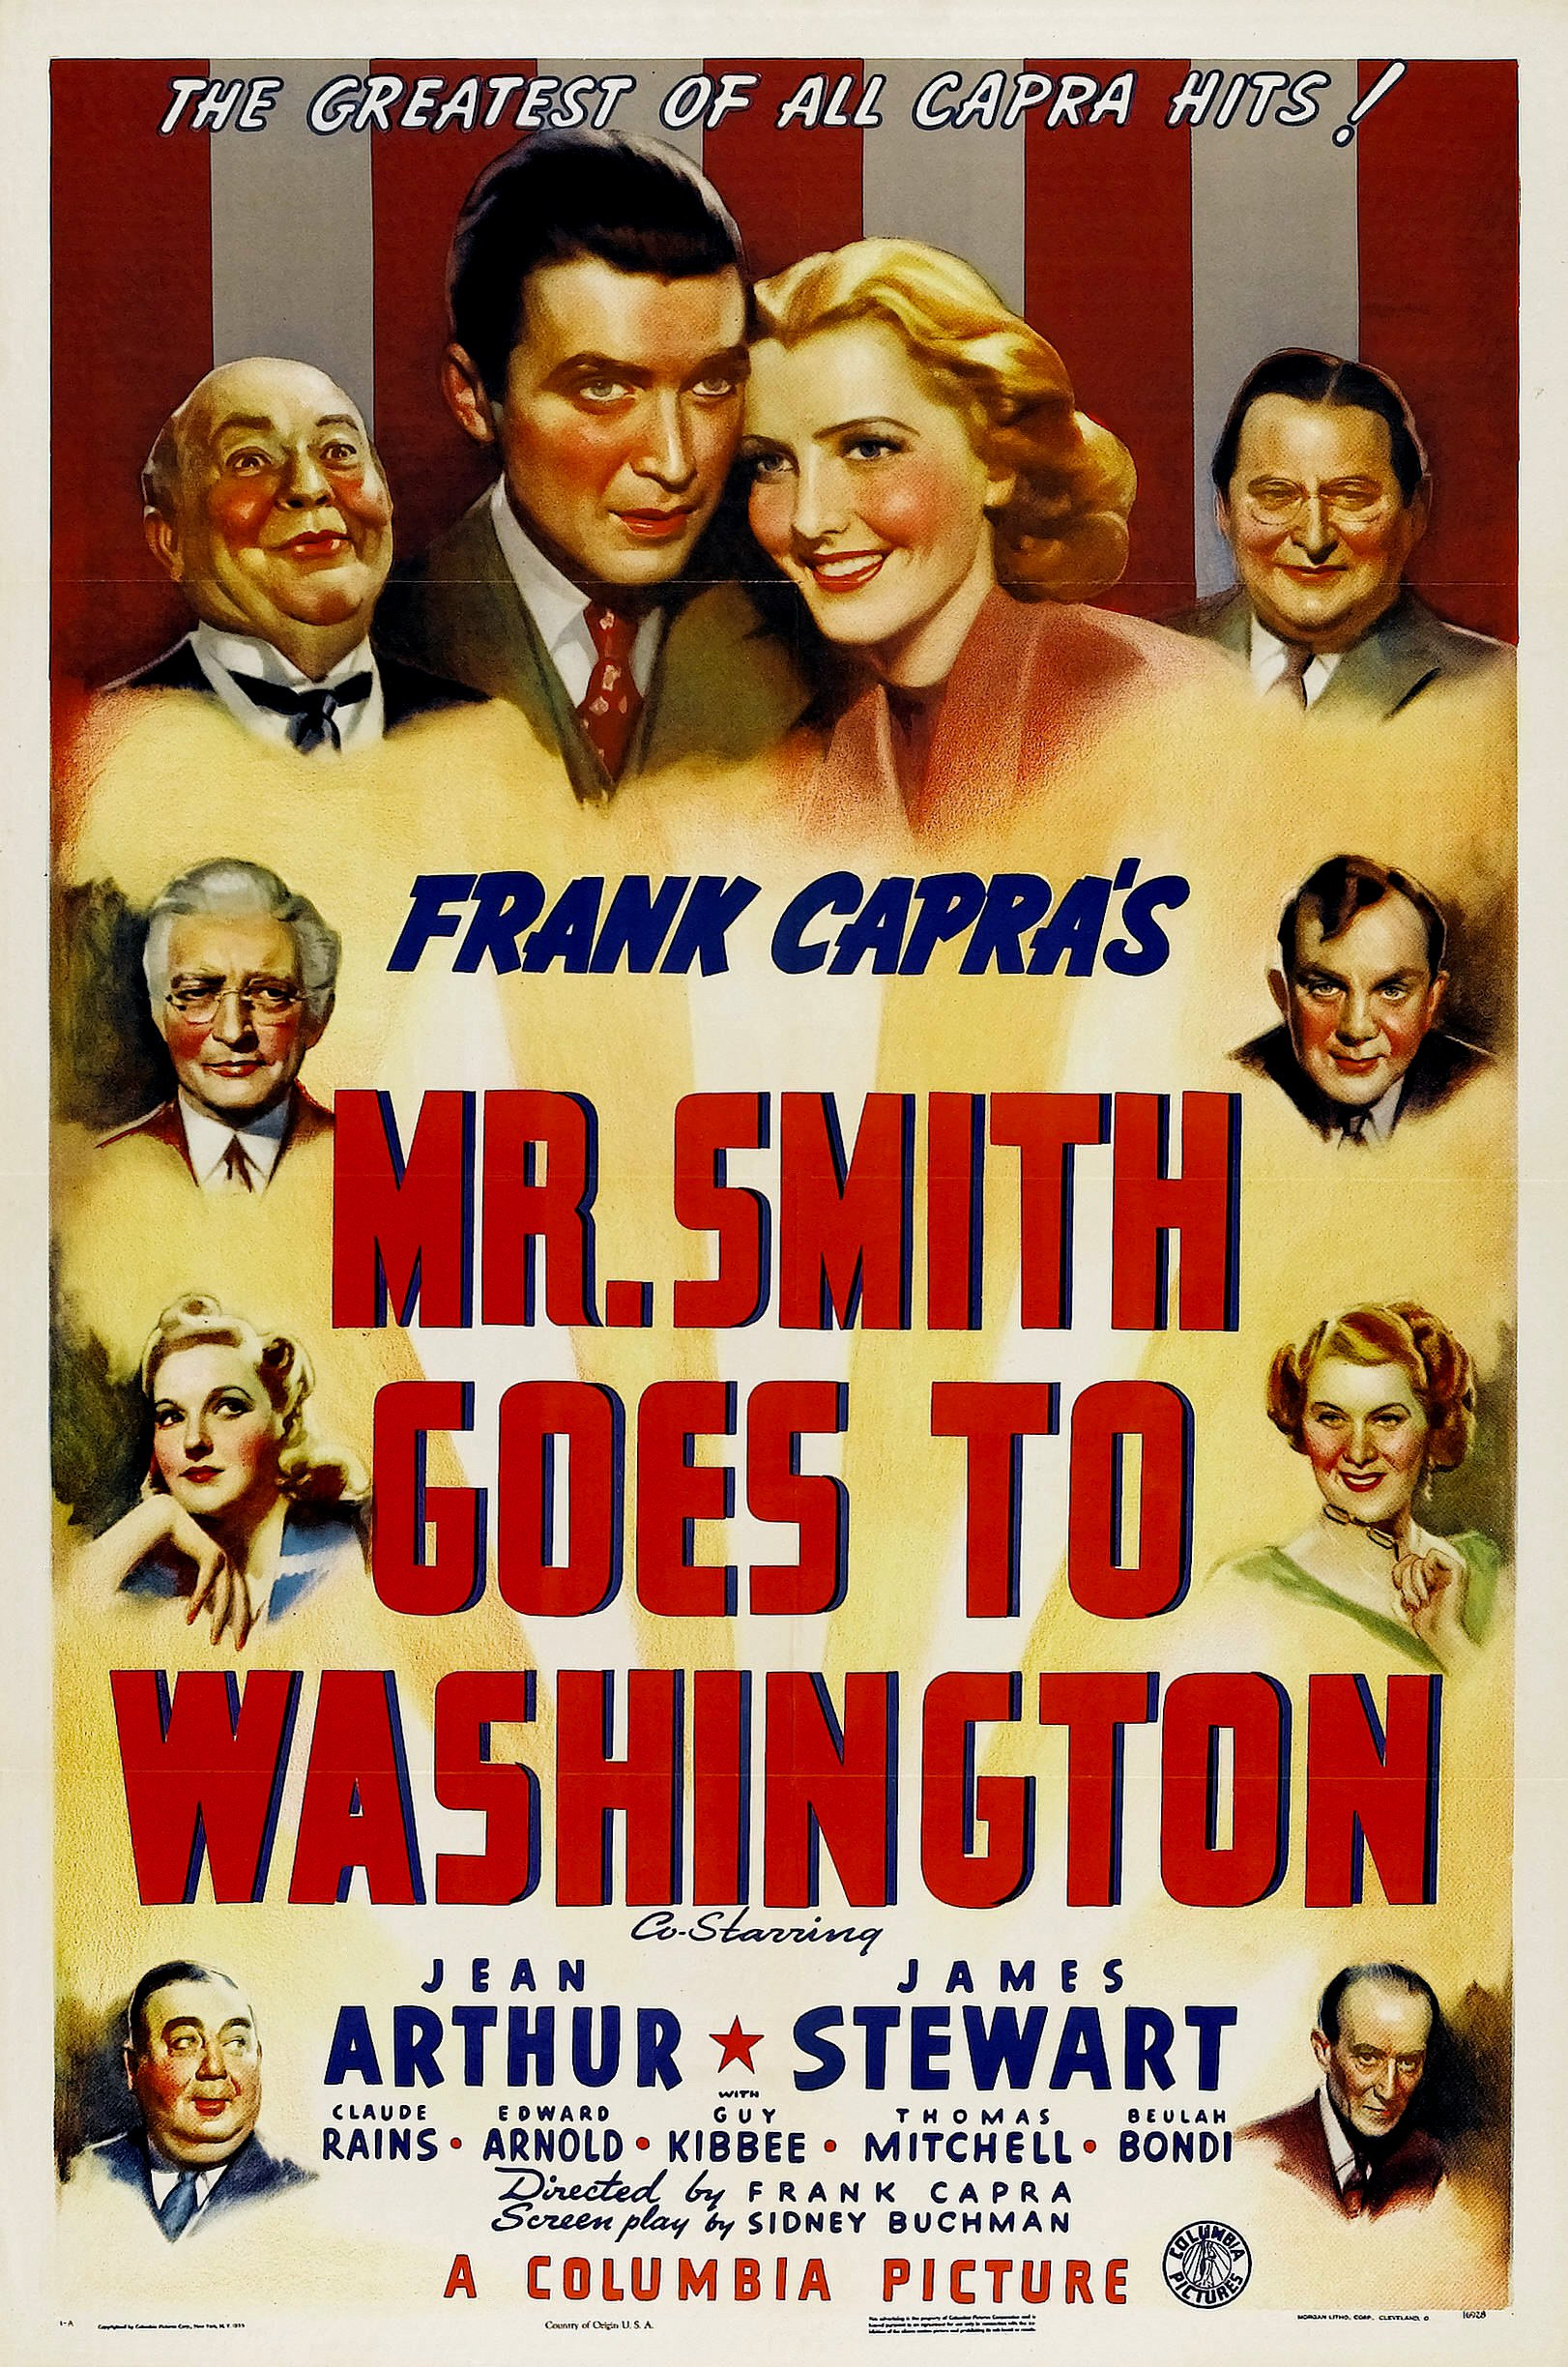 [FCPS] MR. SMITH GOES TO WASHINGTON